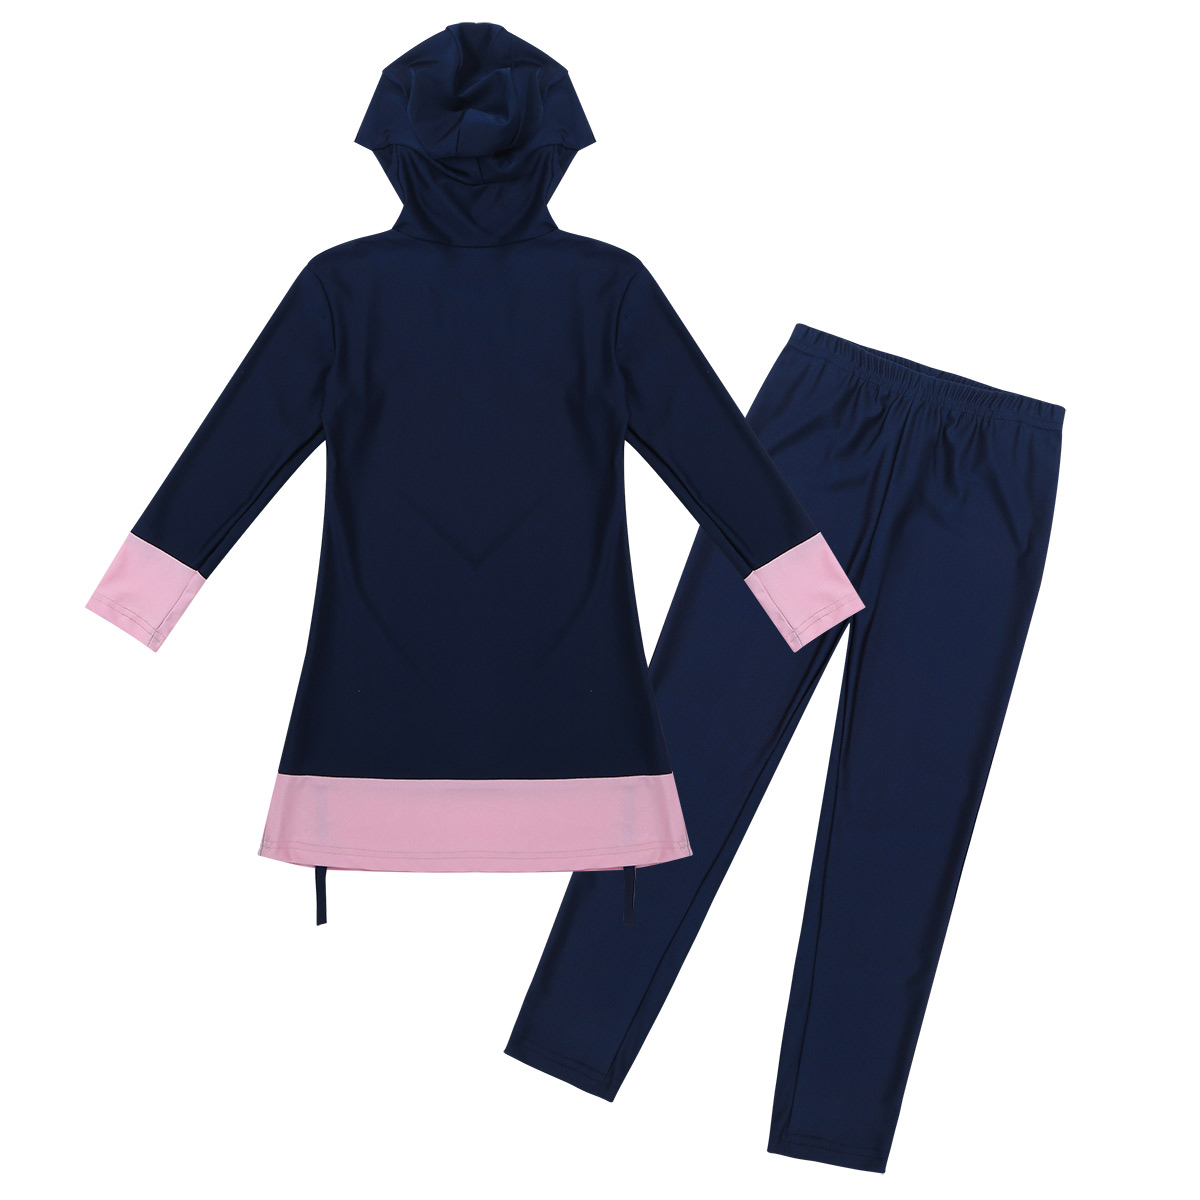 TiaoBug Kids Teens Long Sleeves Sweetheart Printed Full Cover Conservative Hijab Burkini Swimwear Girls Swimsuit with Pants Set